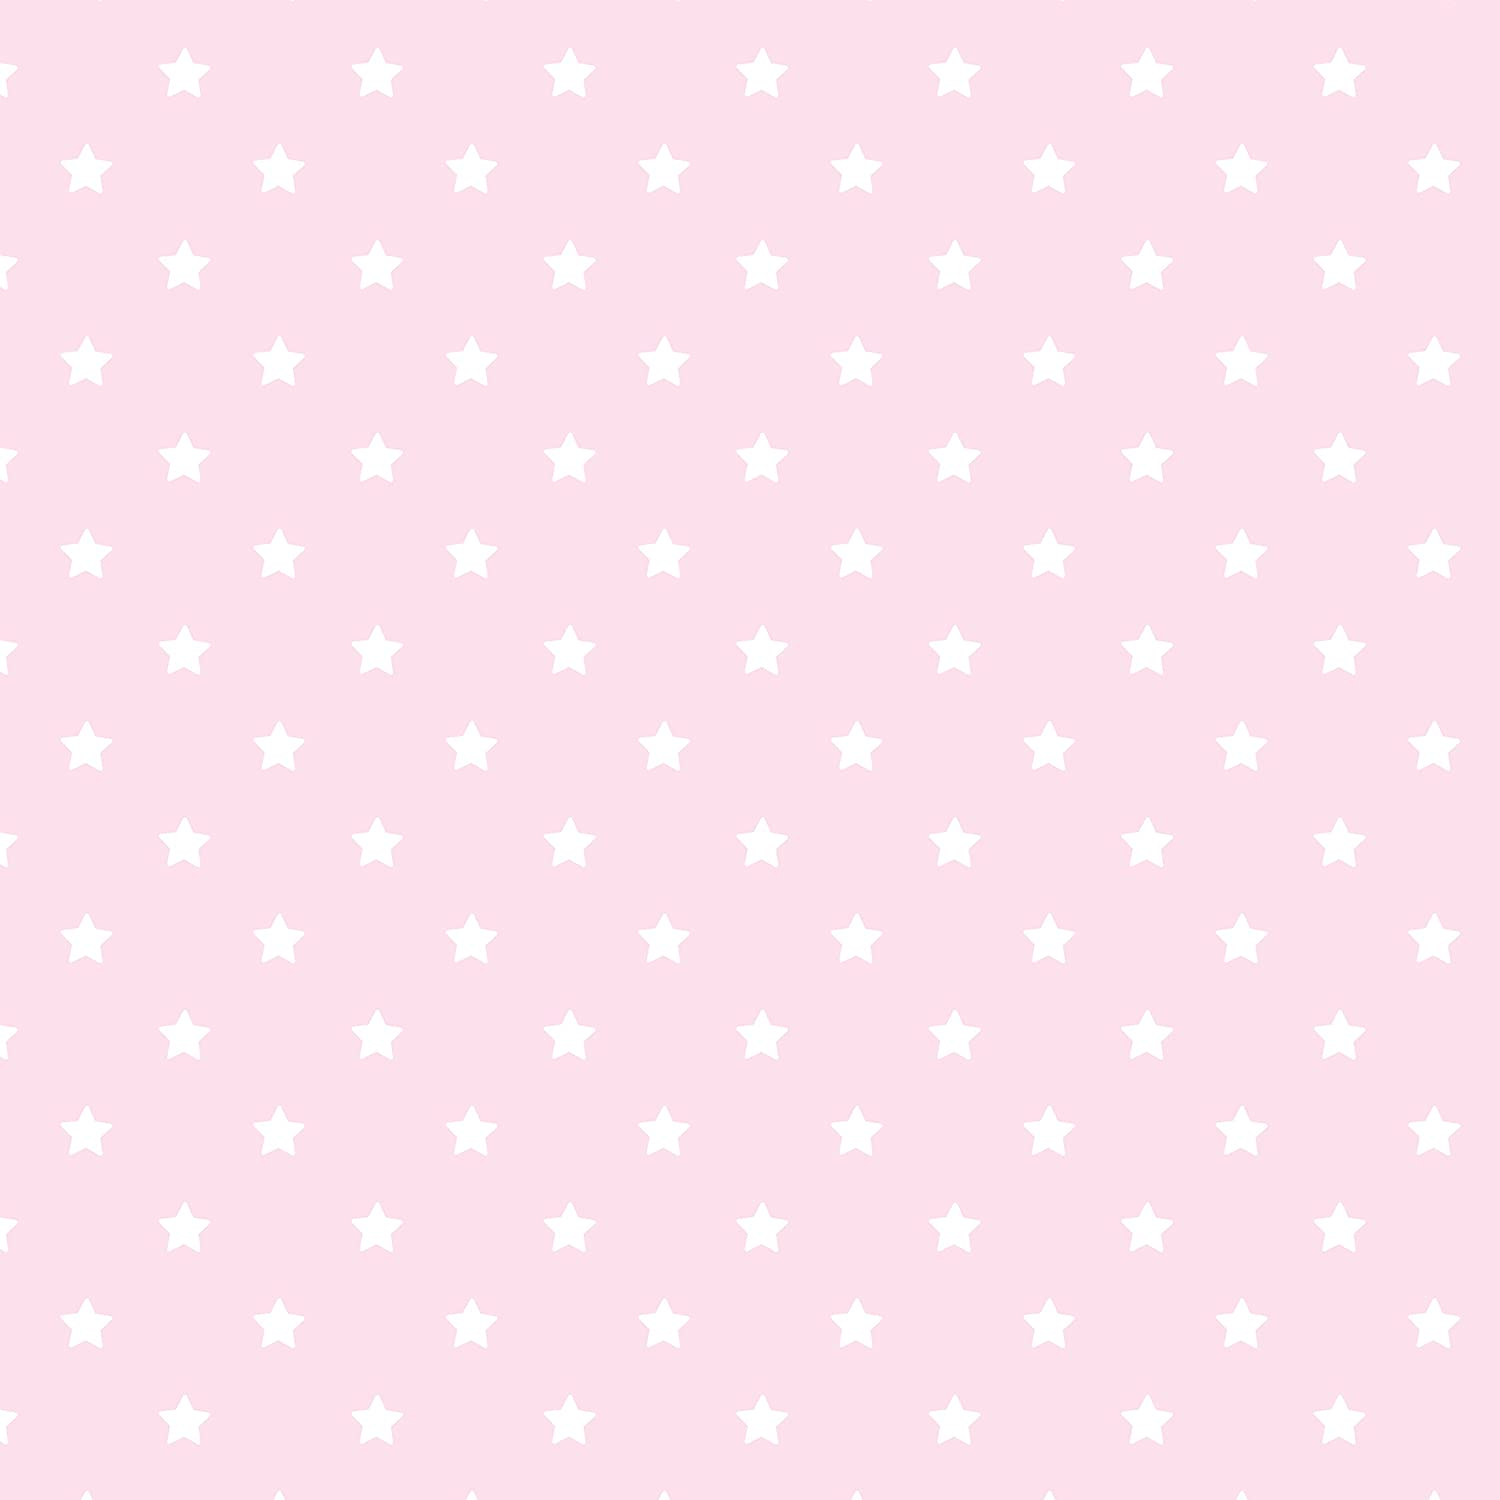 SwaddleMe Original Swaddle Small, Pink Whale//Spot and Grey Stripe, Pack of 3